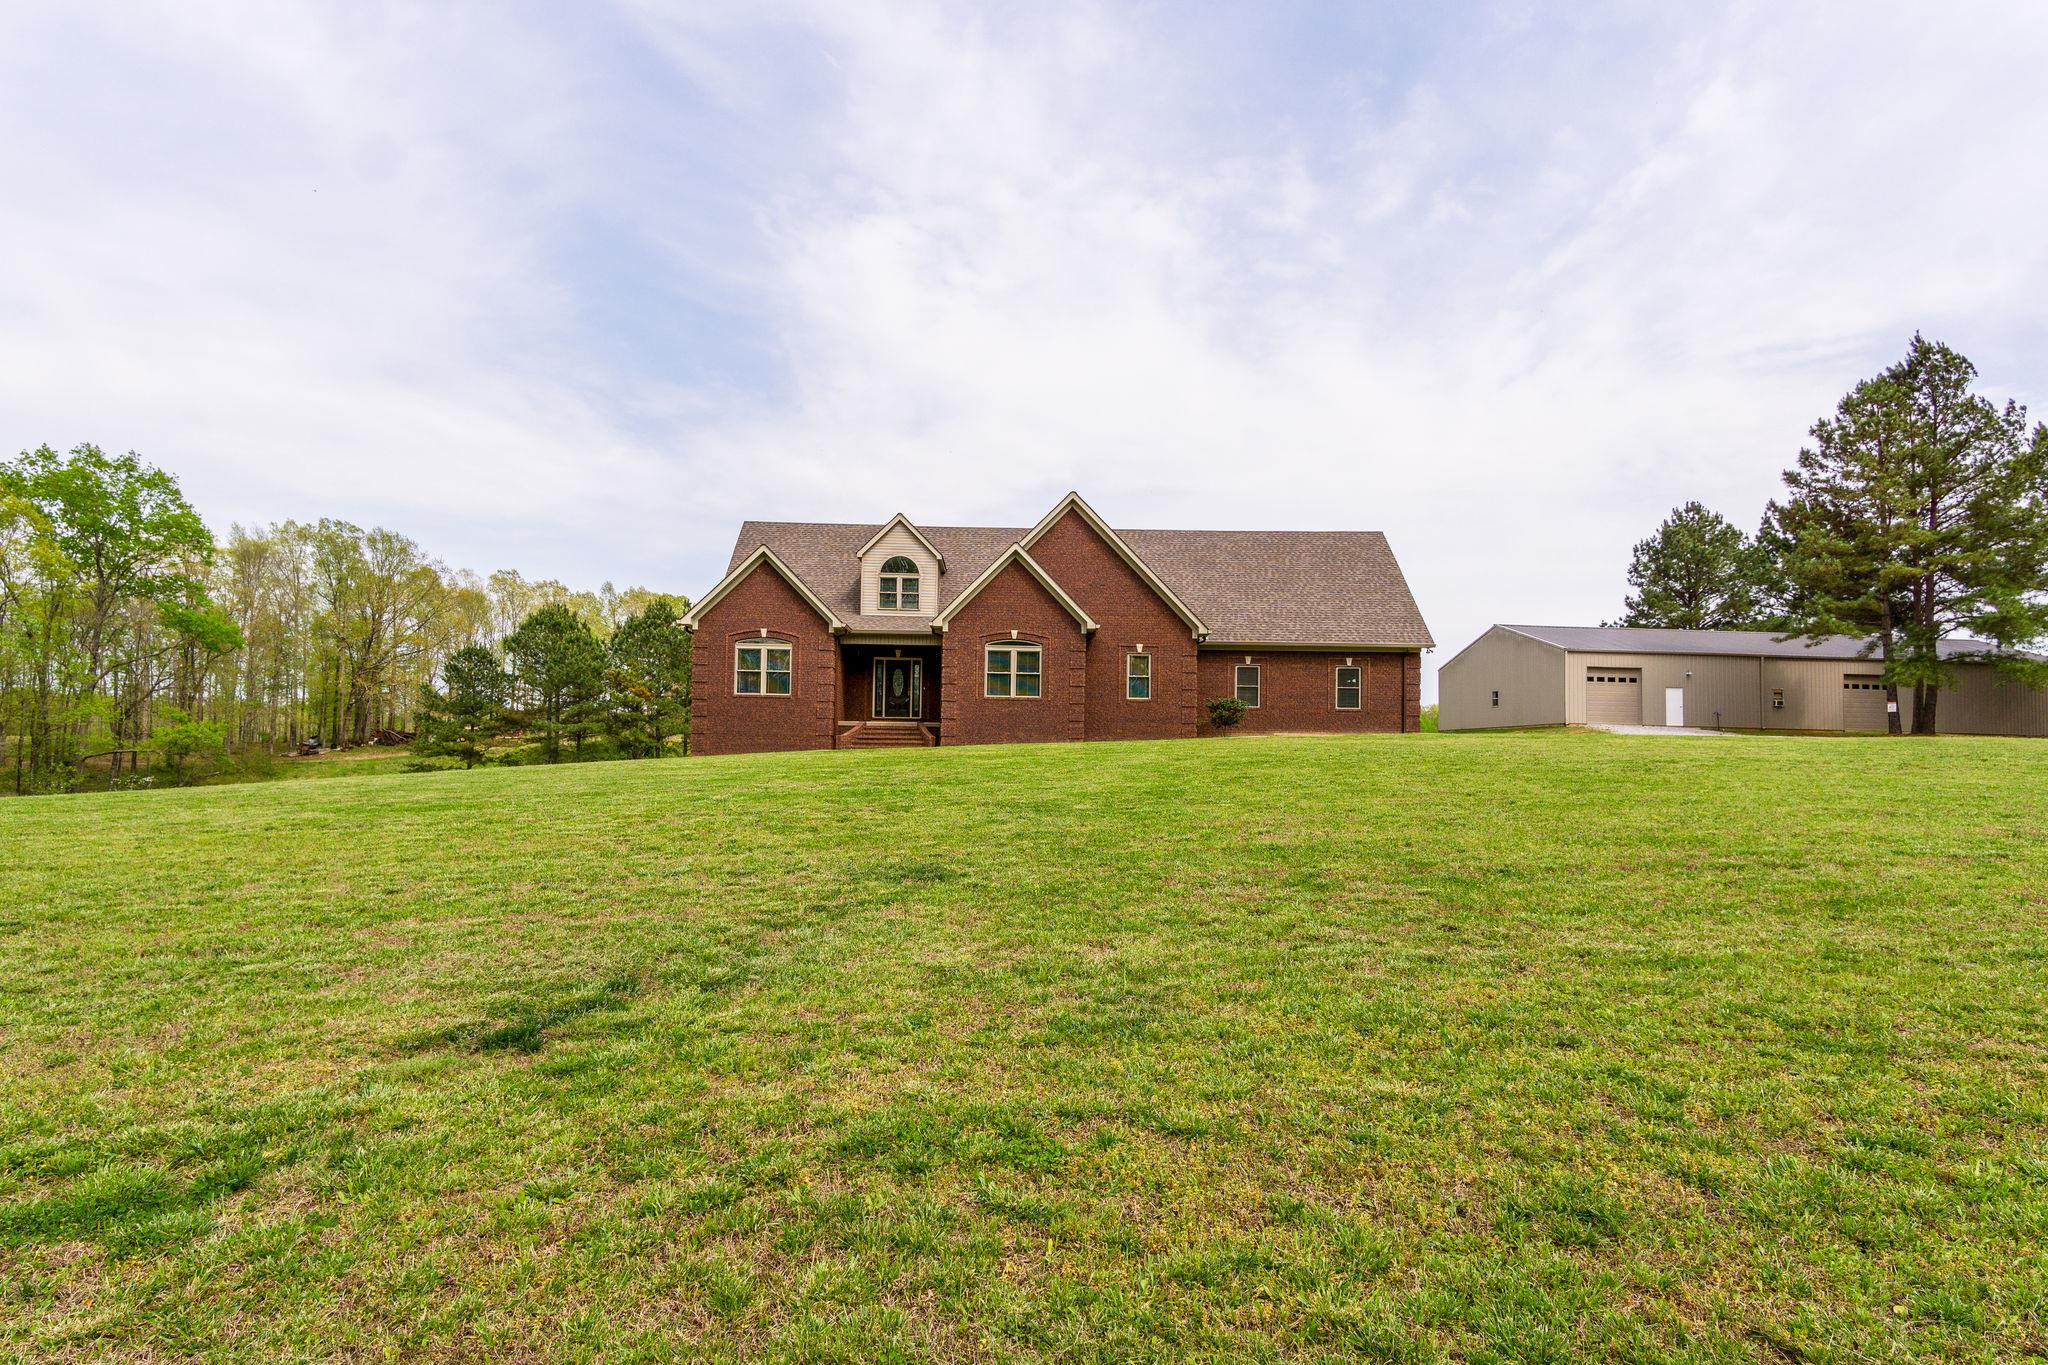 32 Hollis Hollow Rd, Loretto, TN 38469 - Loretto, TN real estate listing